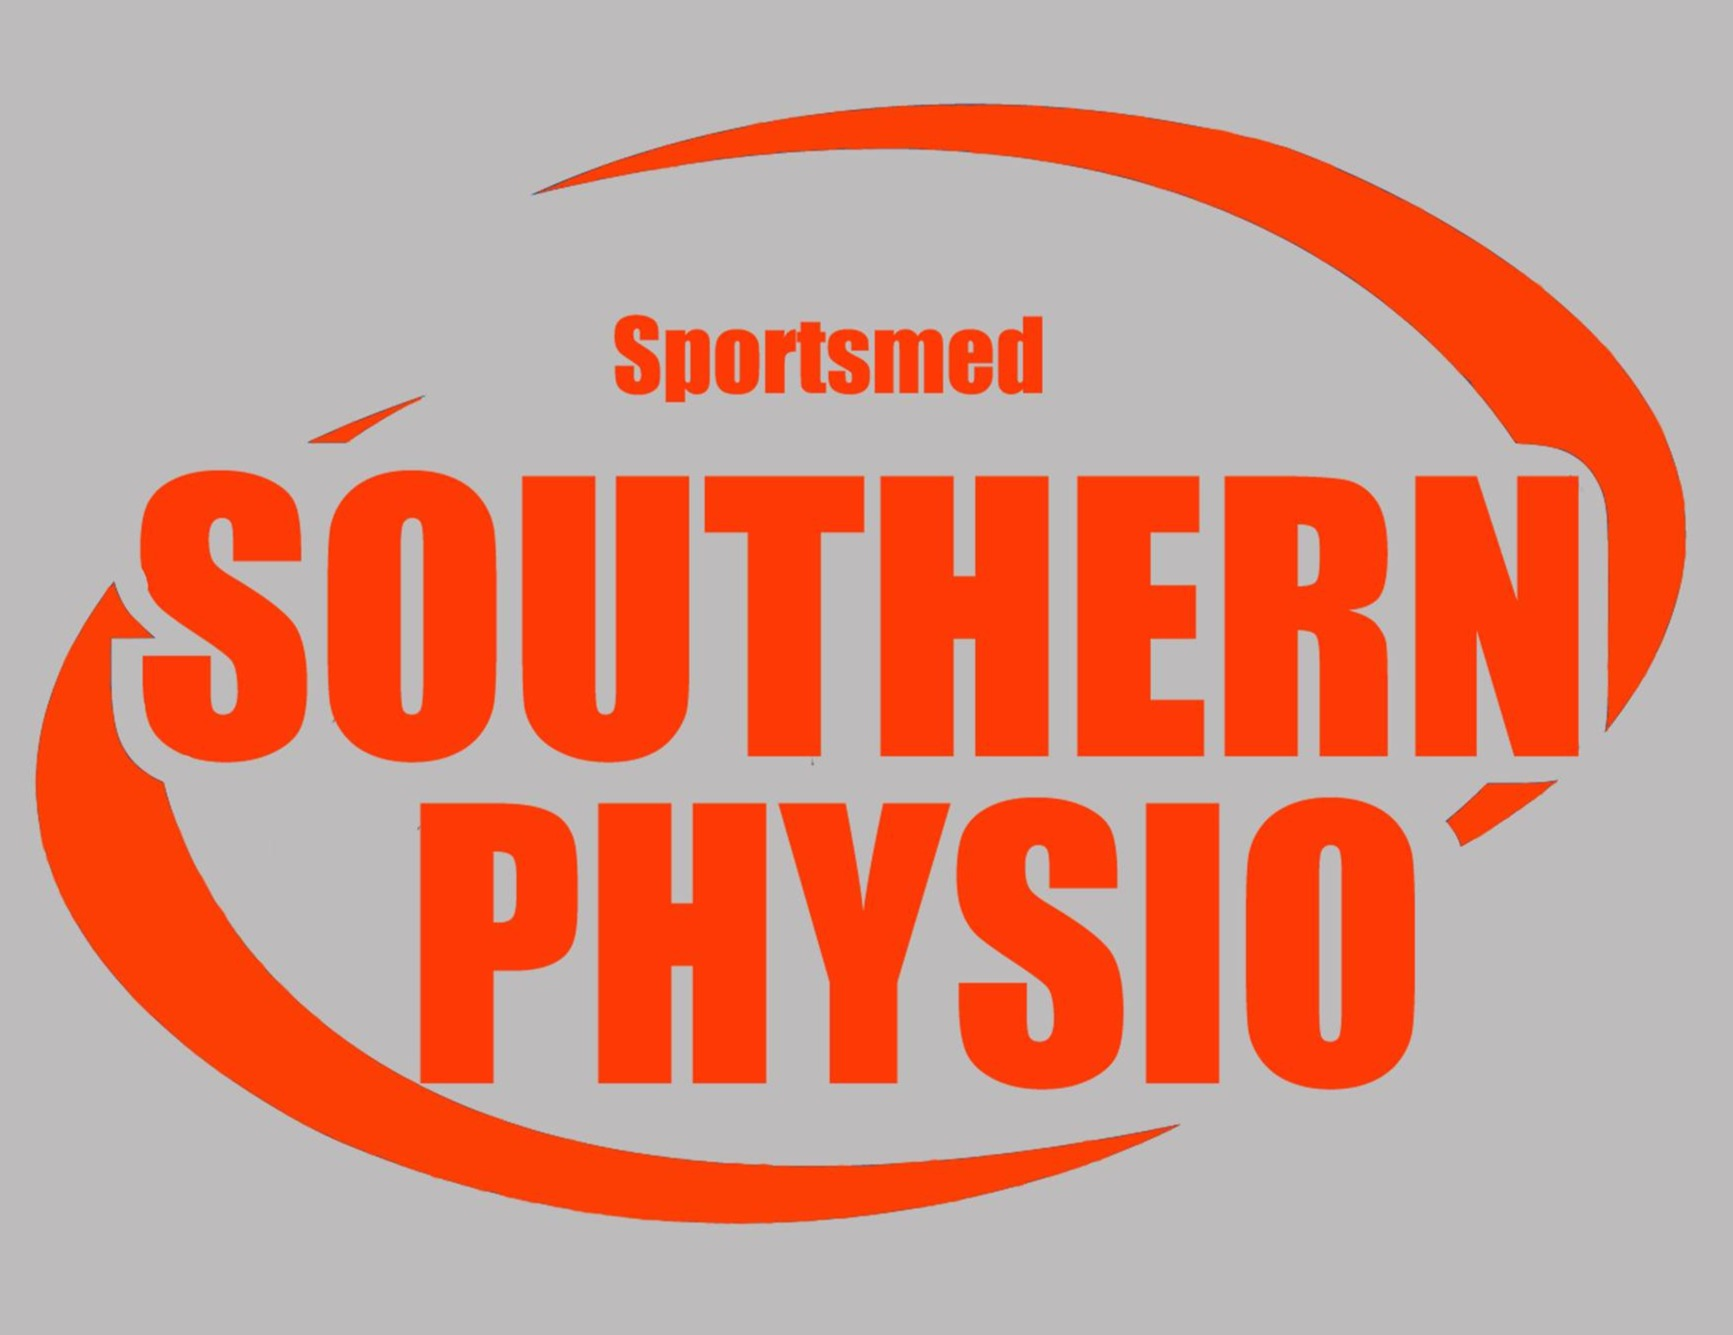 Sportsmed Southern Physiotherapy